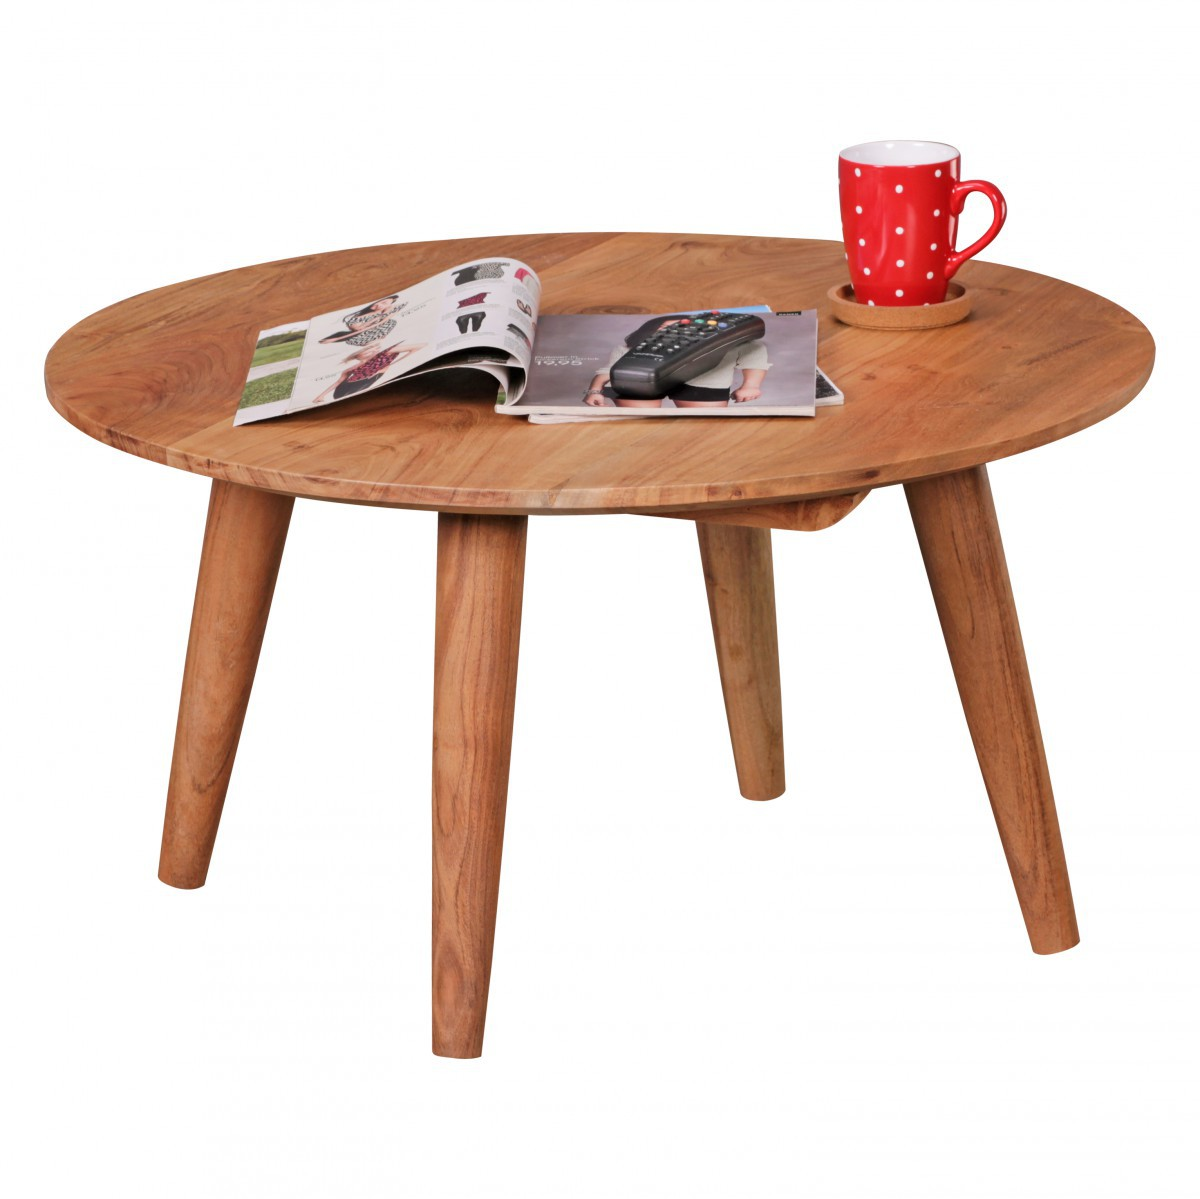 Finebuy table basse en bois massif acacia table basse ronde 75 x 40 cm ferme - Table basse ronde noire ...